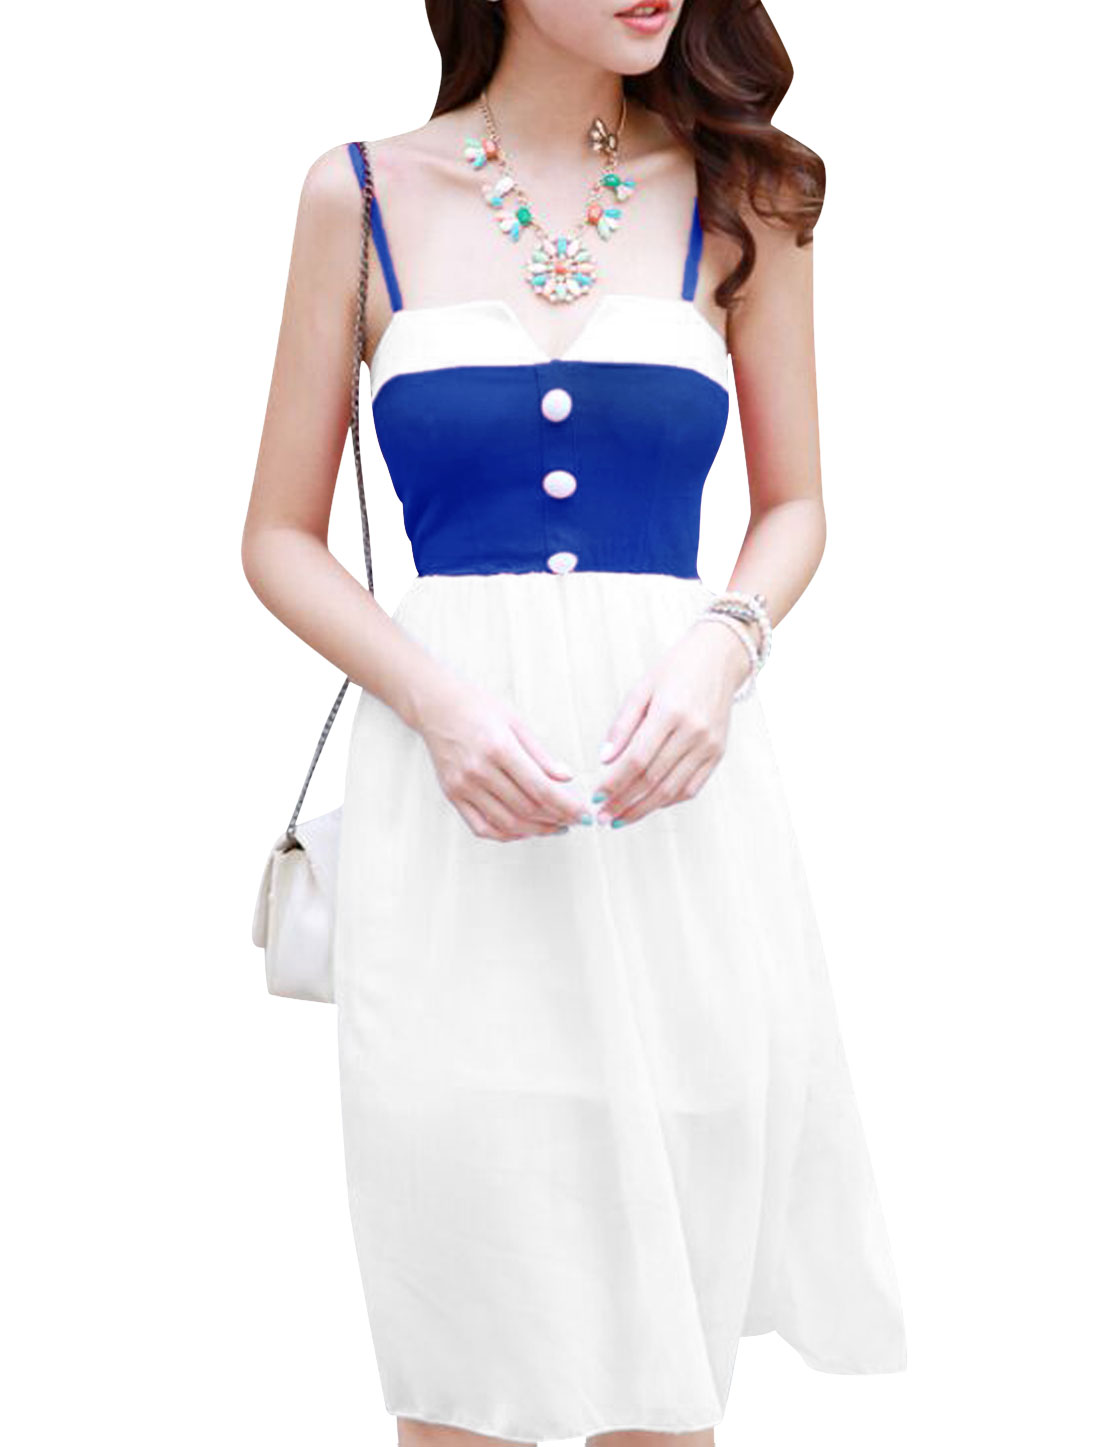 Lady Spaghetti Strap Buttons Decor Contrast Color Dress White Royal Blue XS